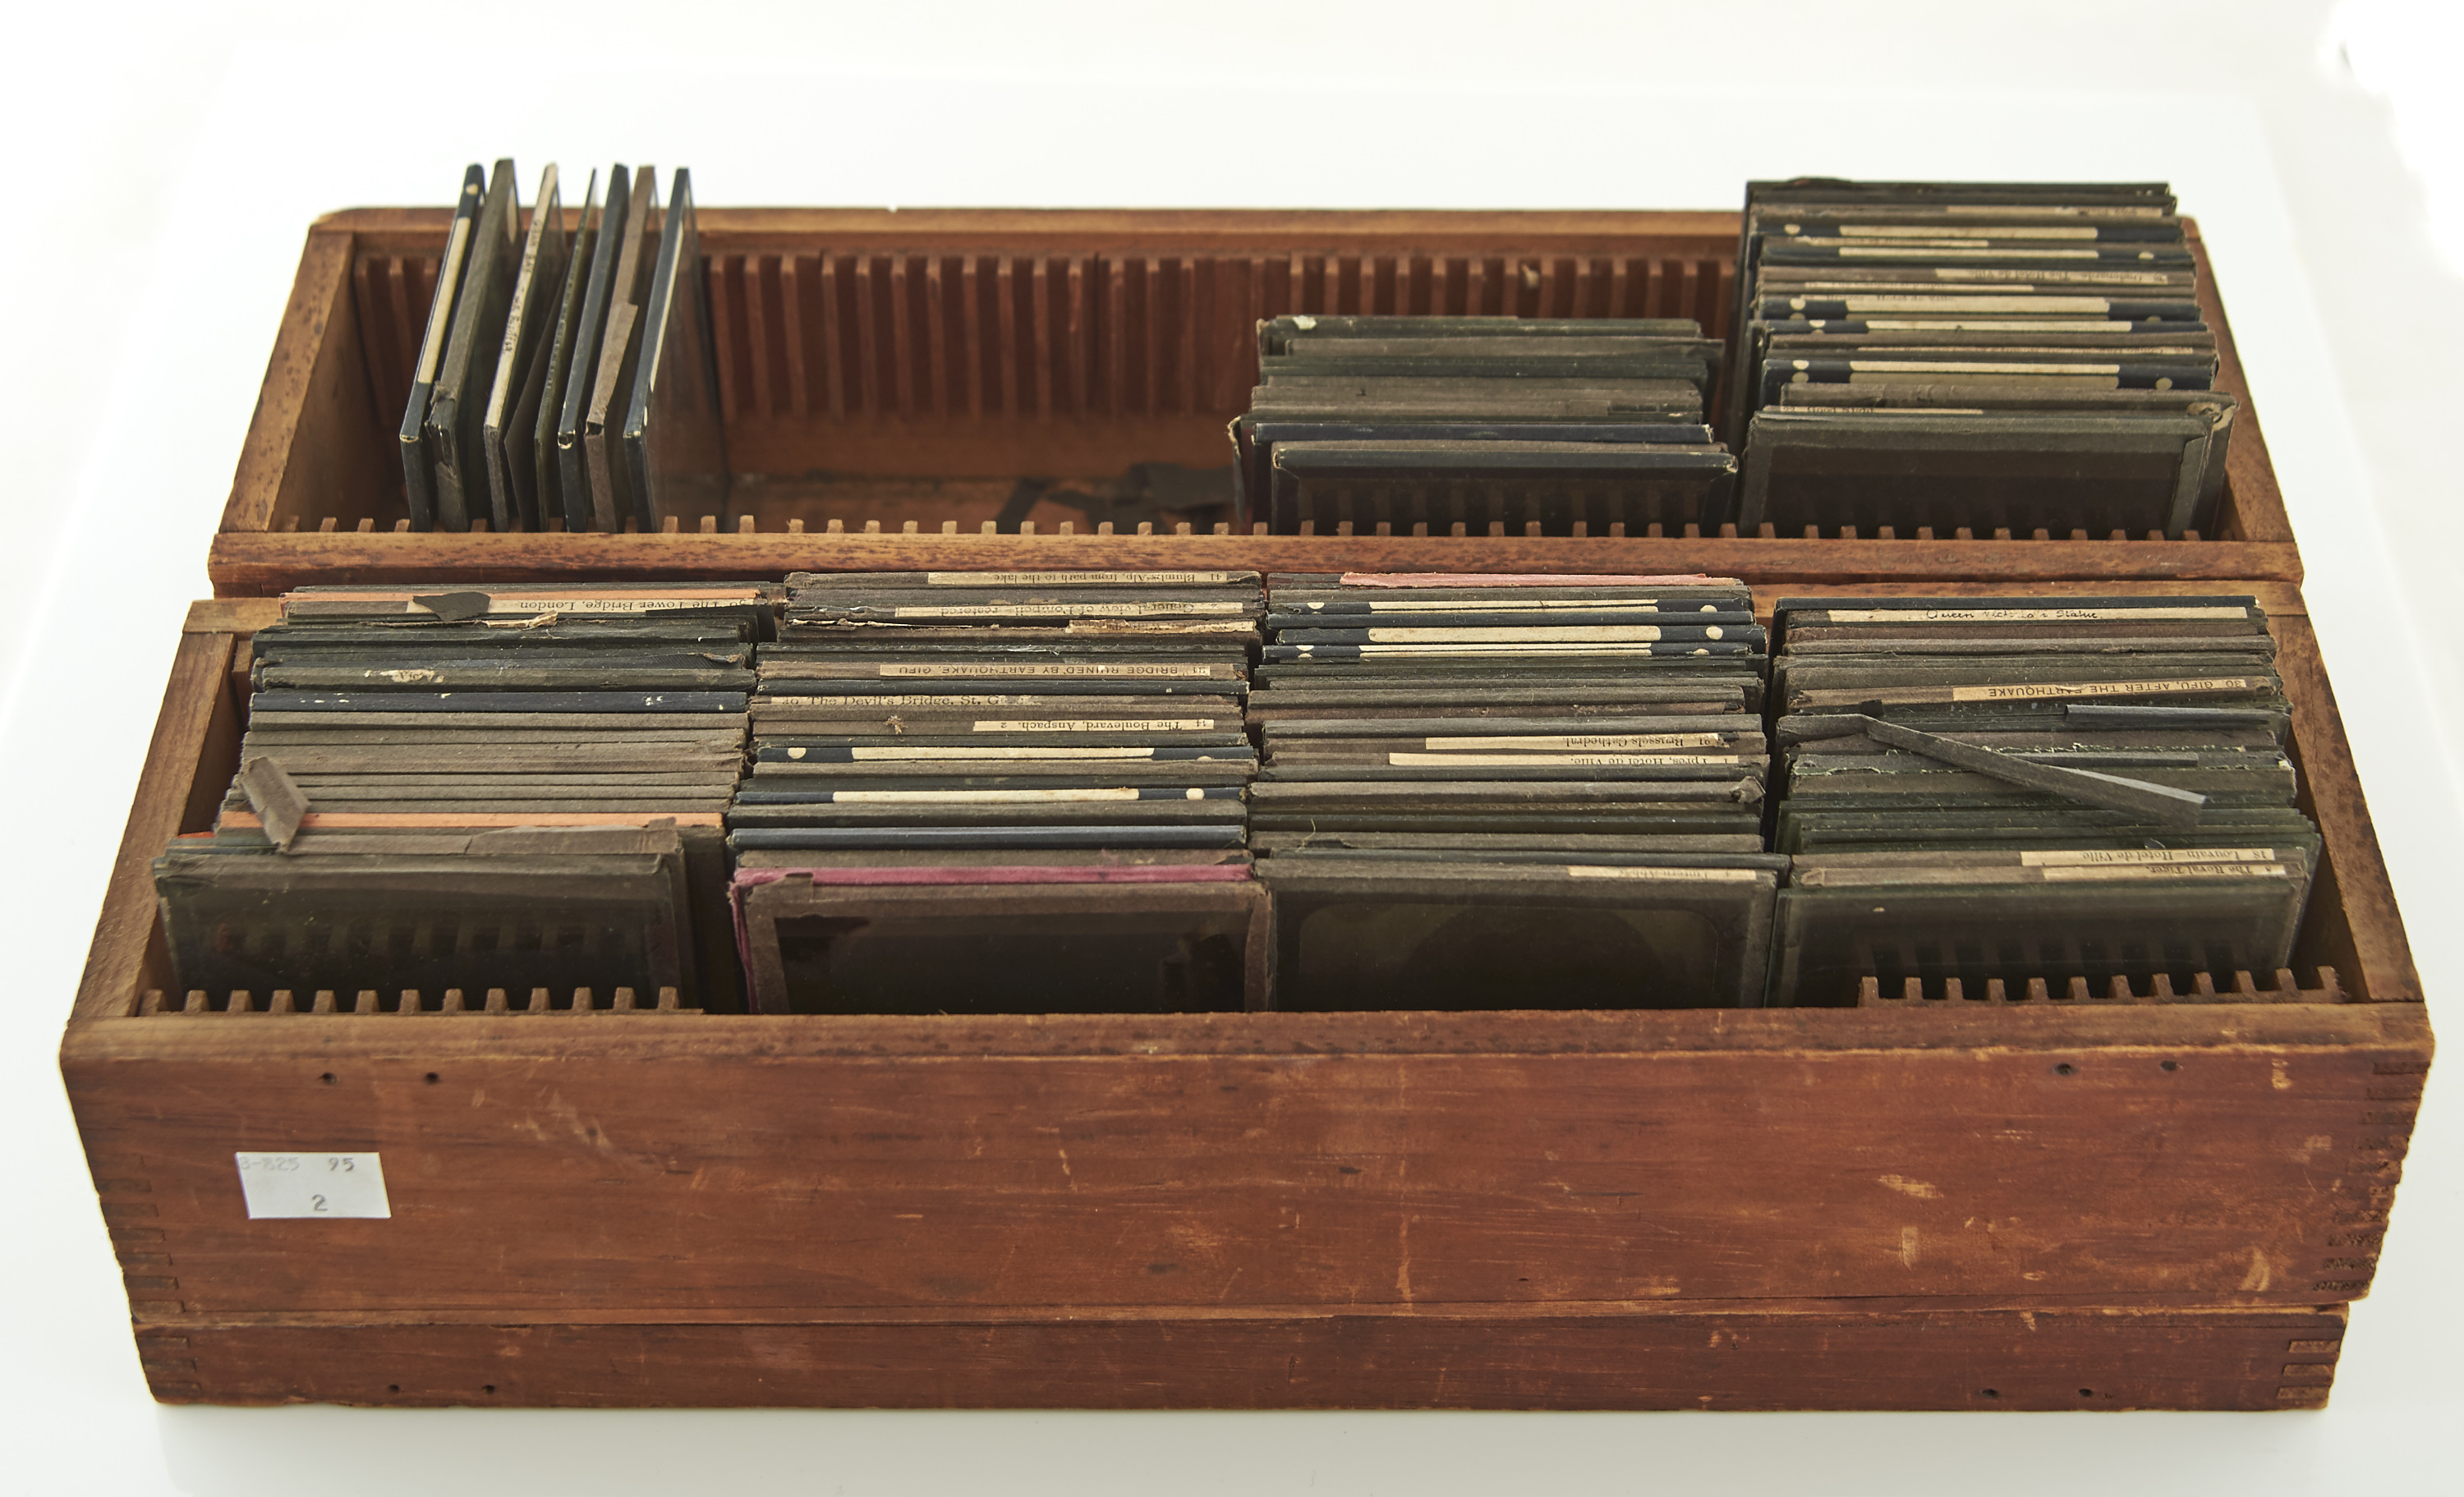 """TWO DEAL BOXES OF 3¼ X 3¼"""" MAGIC LANTERN SLIDES, LATE 19TH / EARLY 20TH C, VARIOUS SUBJECTS, TO"""